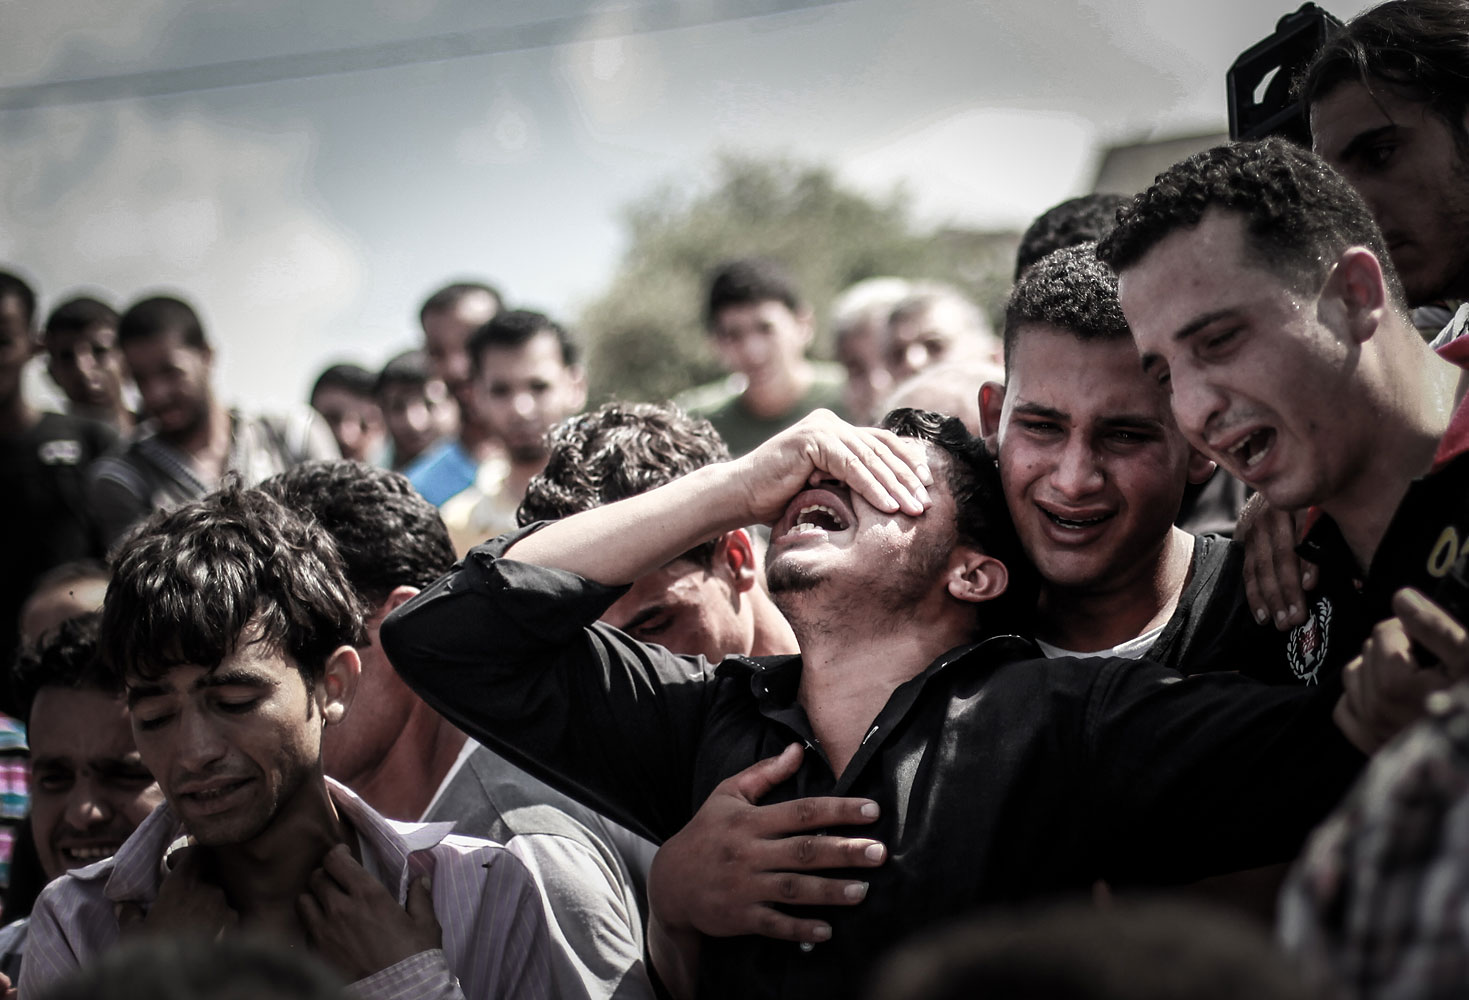 Palestinian relatives mourn during the funeral of eight members of the same family who were killed overnight in an Israeli strike on July 19, 2014 in Beit Lahia, north of the Gaza strip.